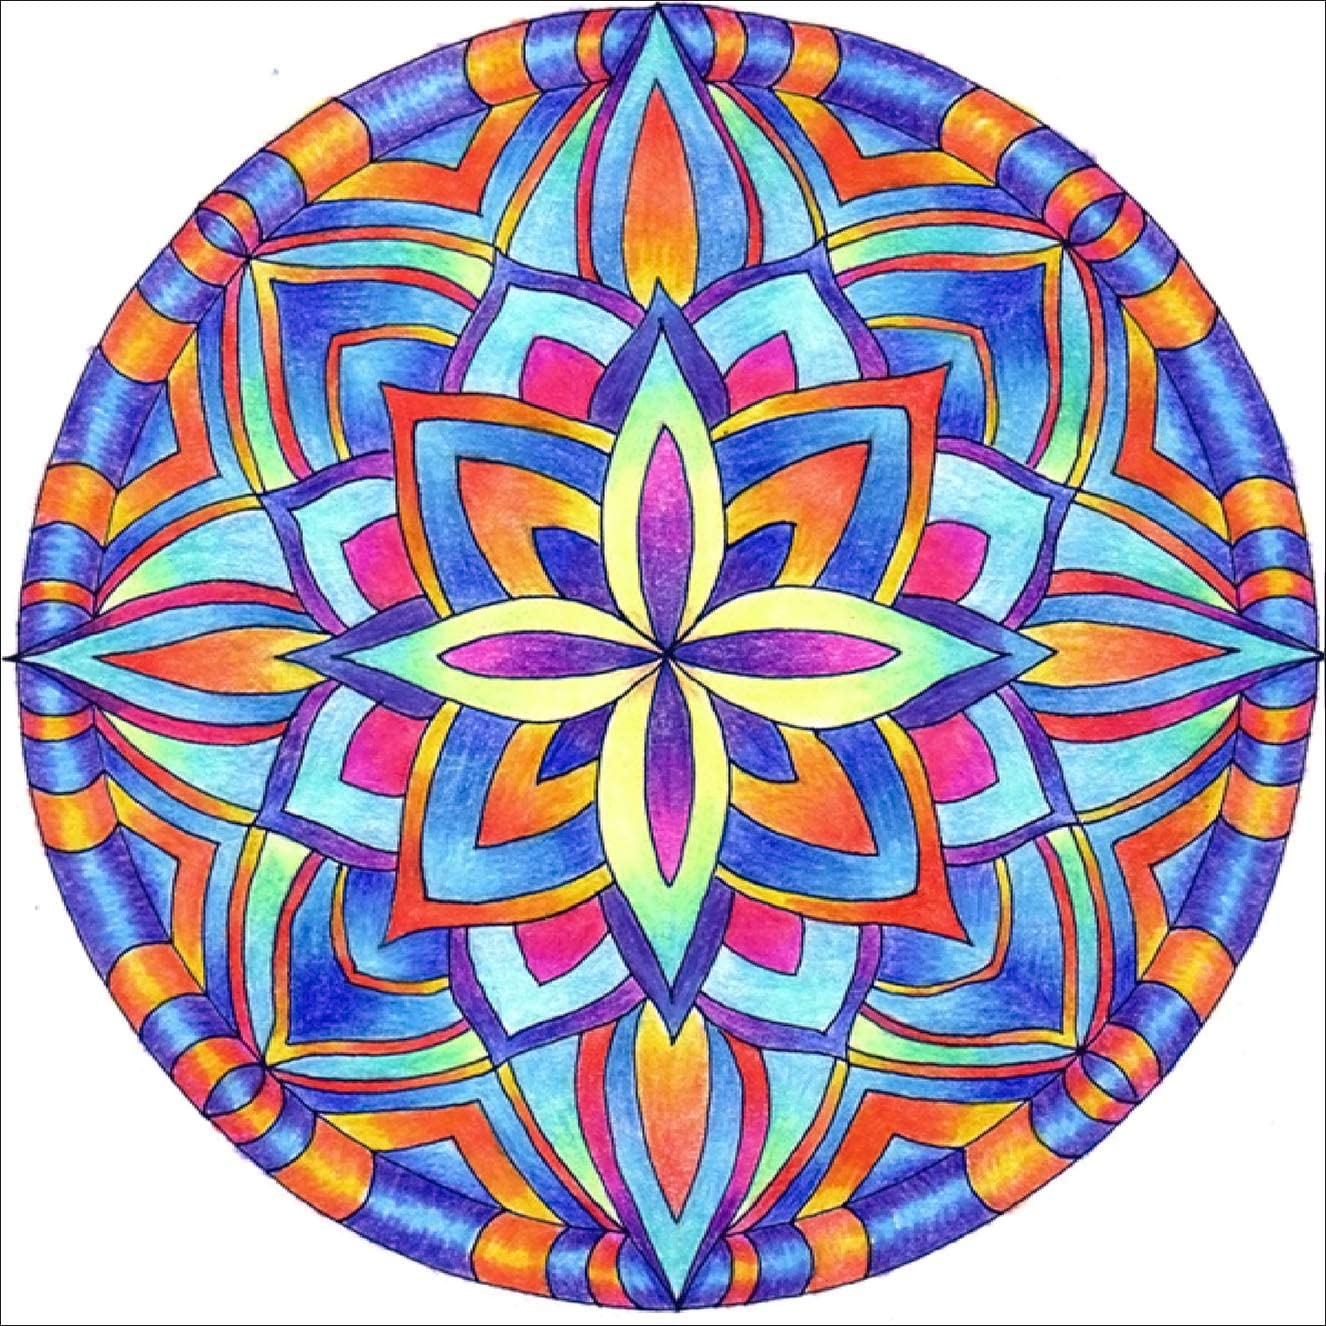 Bimkole 5D Diamond Painting Mandala Flower Full Drill by Number Kits Paint with Diamonds Arts Wall Decoration Home Decor, 16x16inch(M1-816)